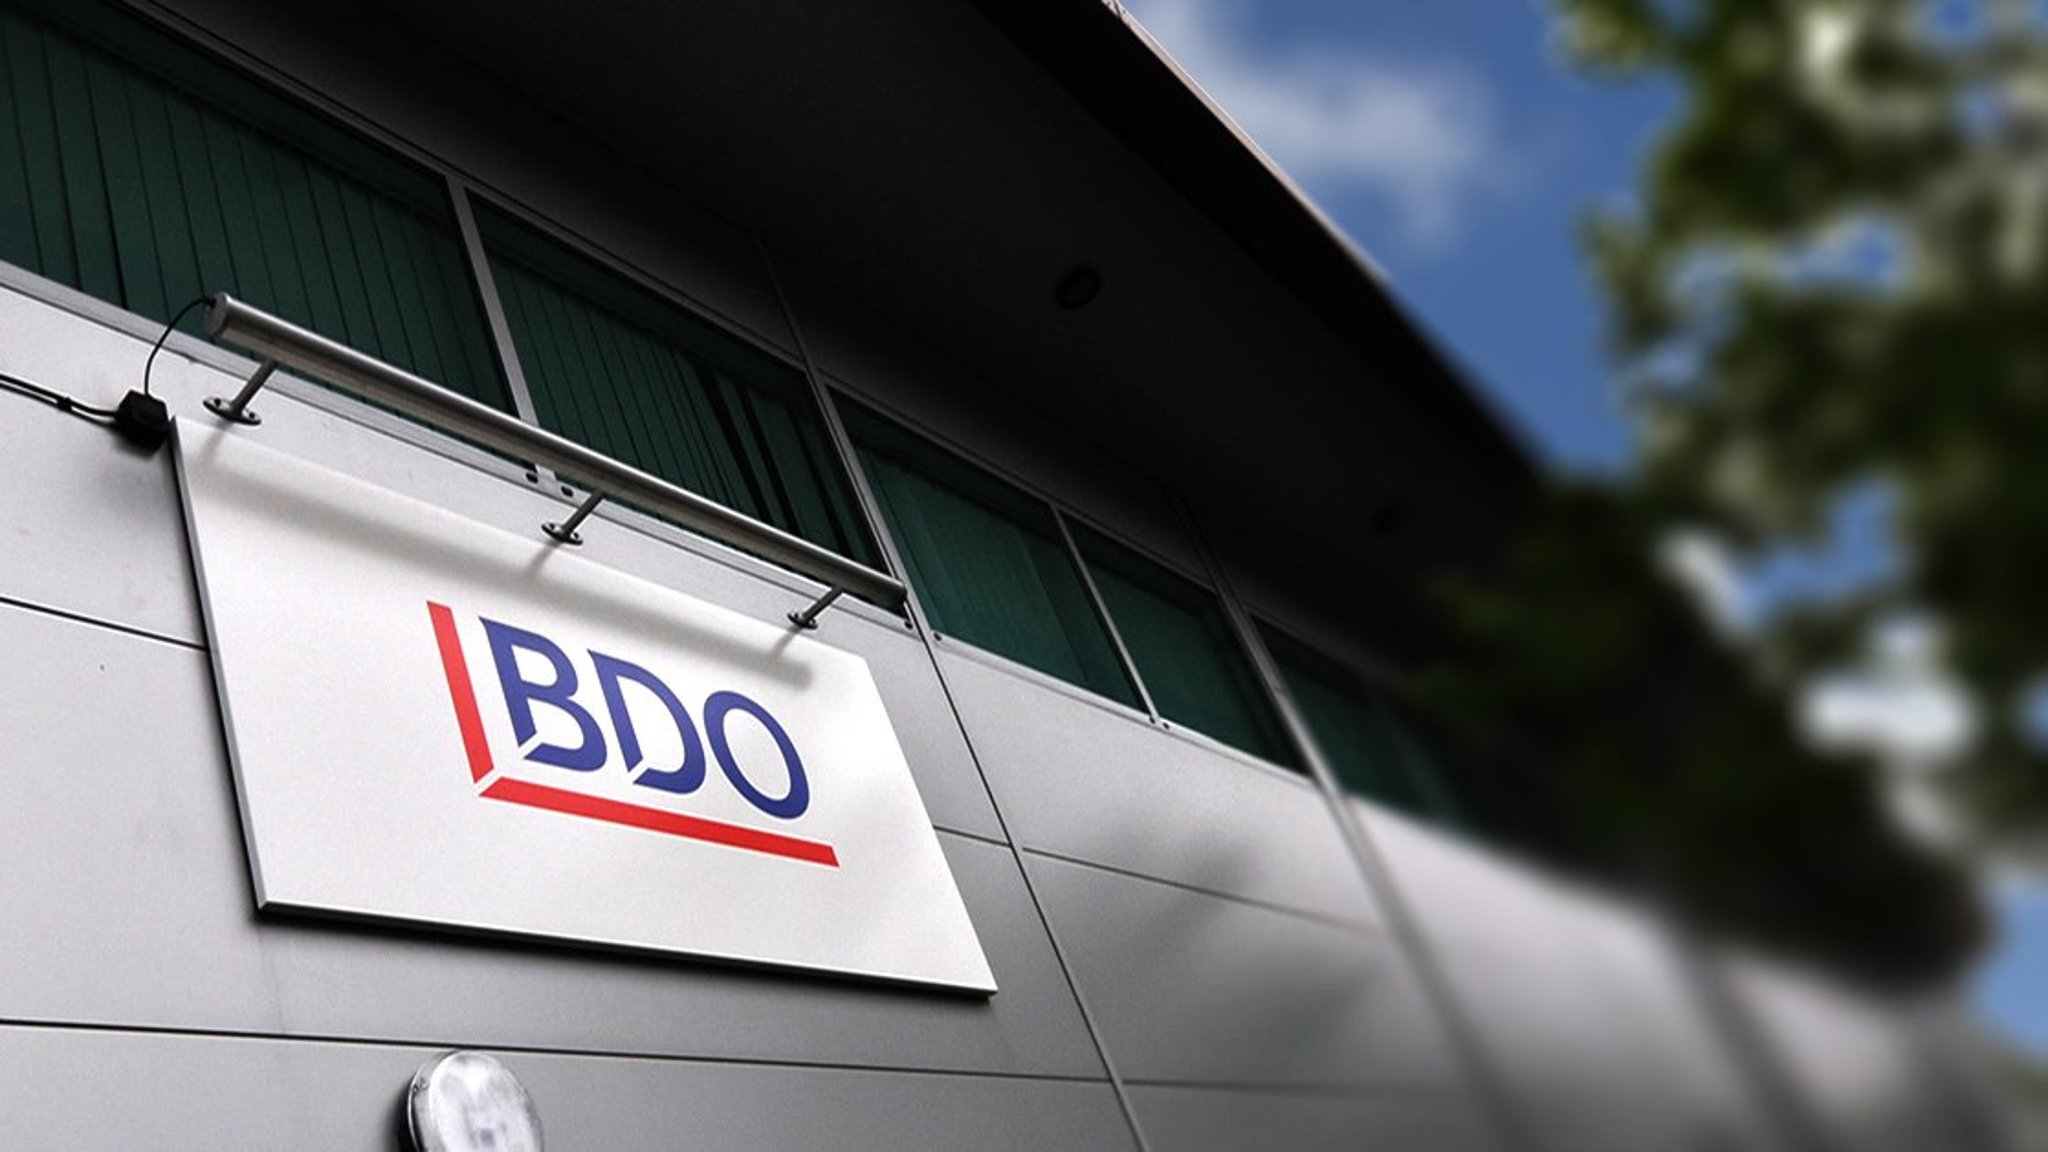 BDO 'pleasantly surprised' by business since Brexit vote